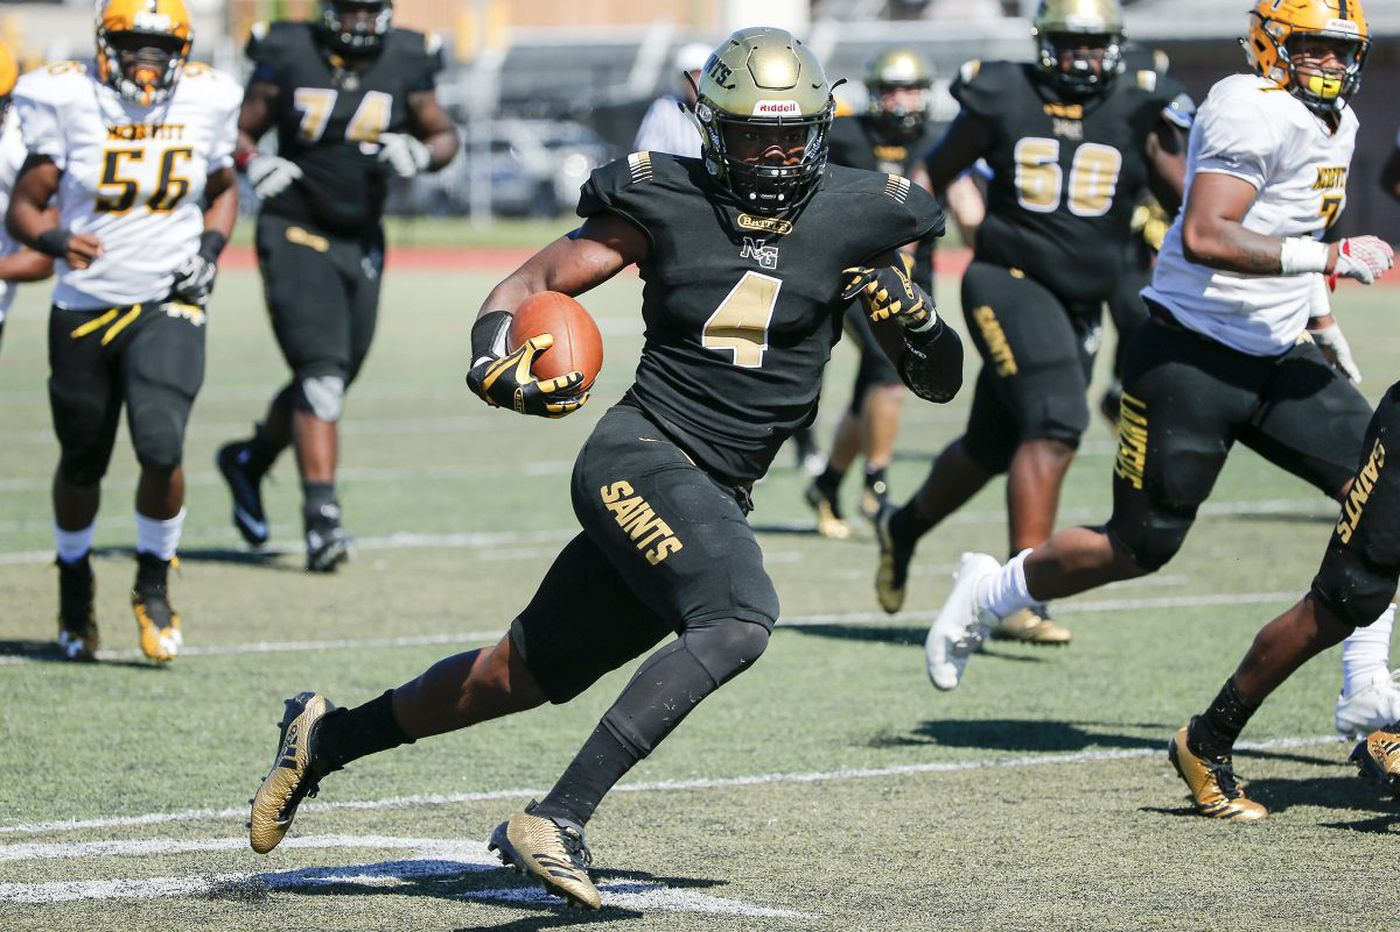 Football playoff primer: Neumann-Goretti quiets West Catholic